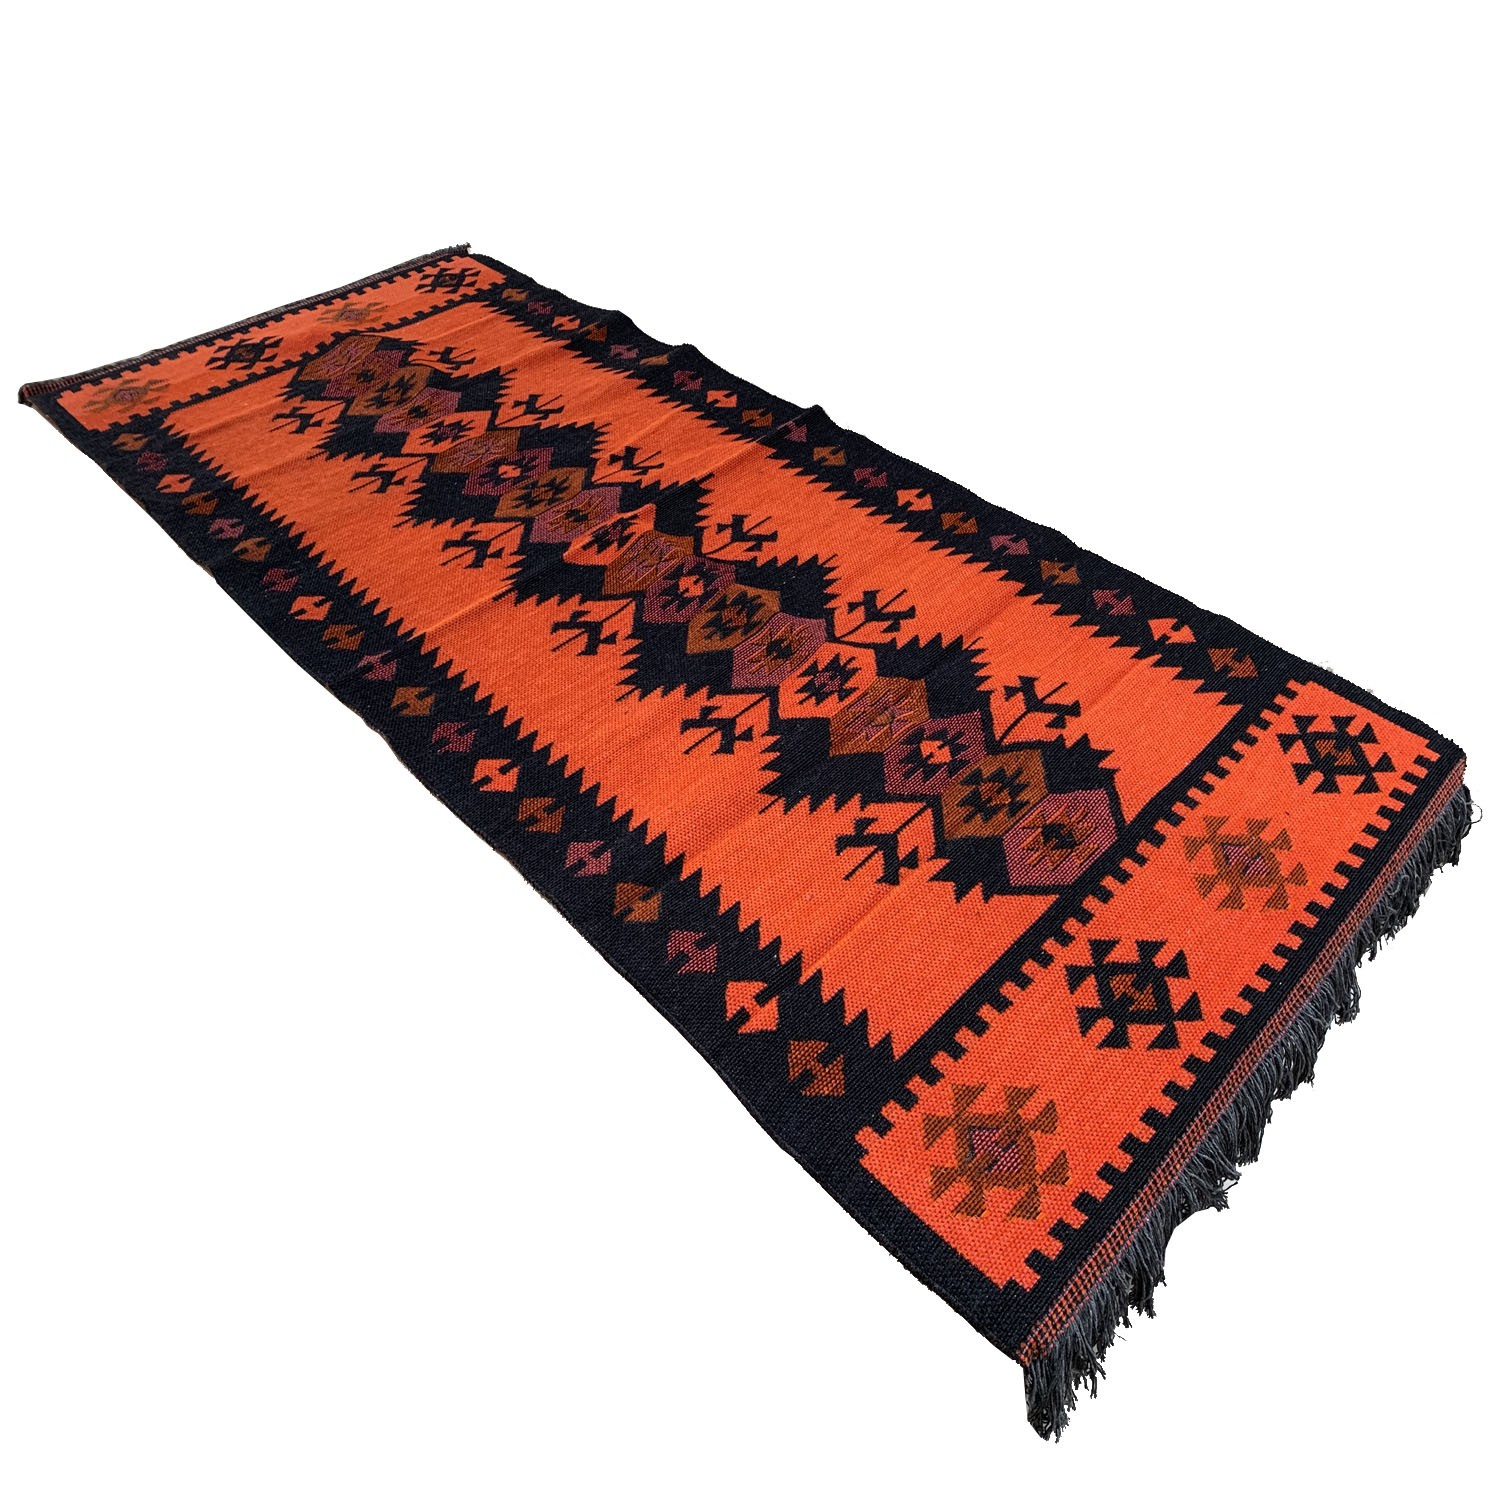 180 x 75 cm reversible oriental Turkish kilim runner